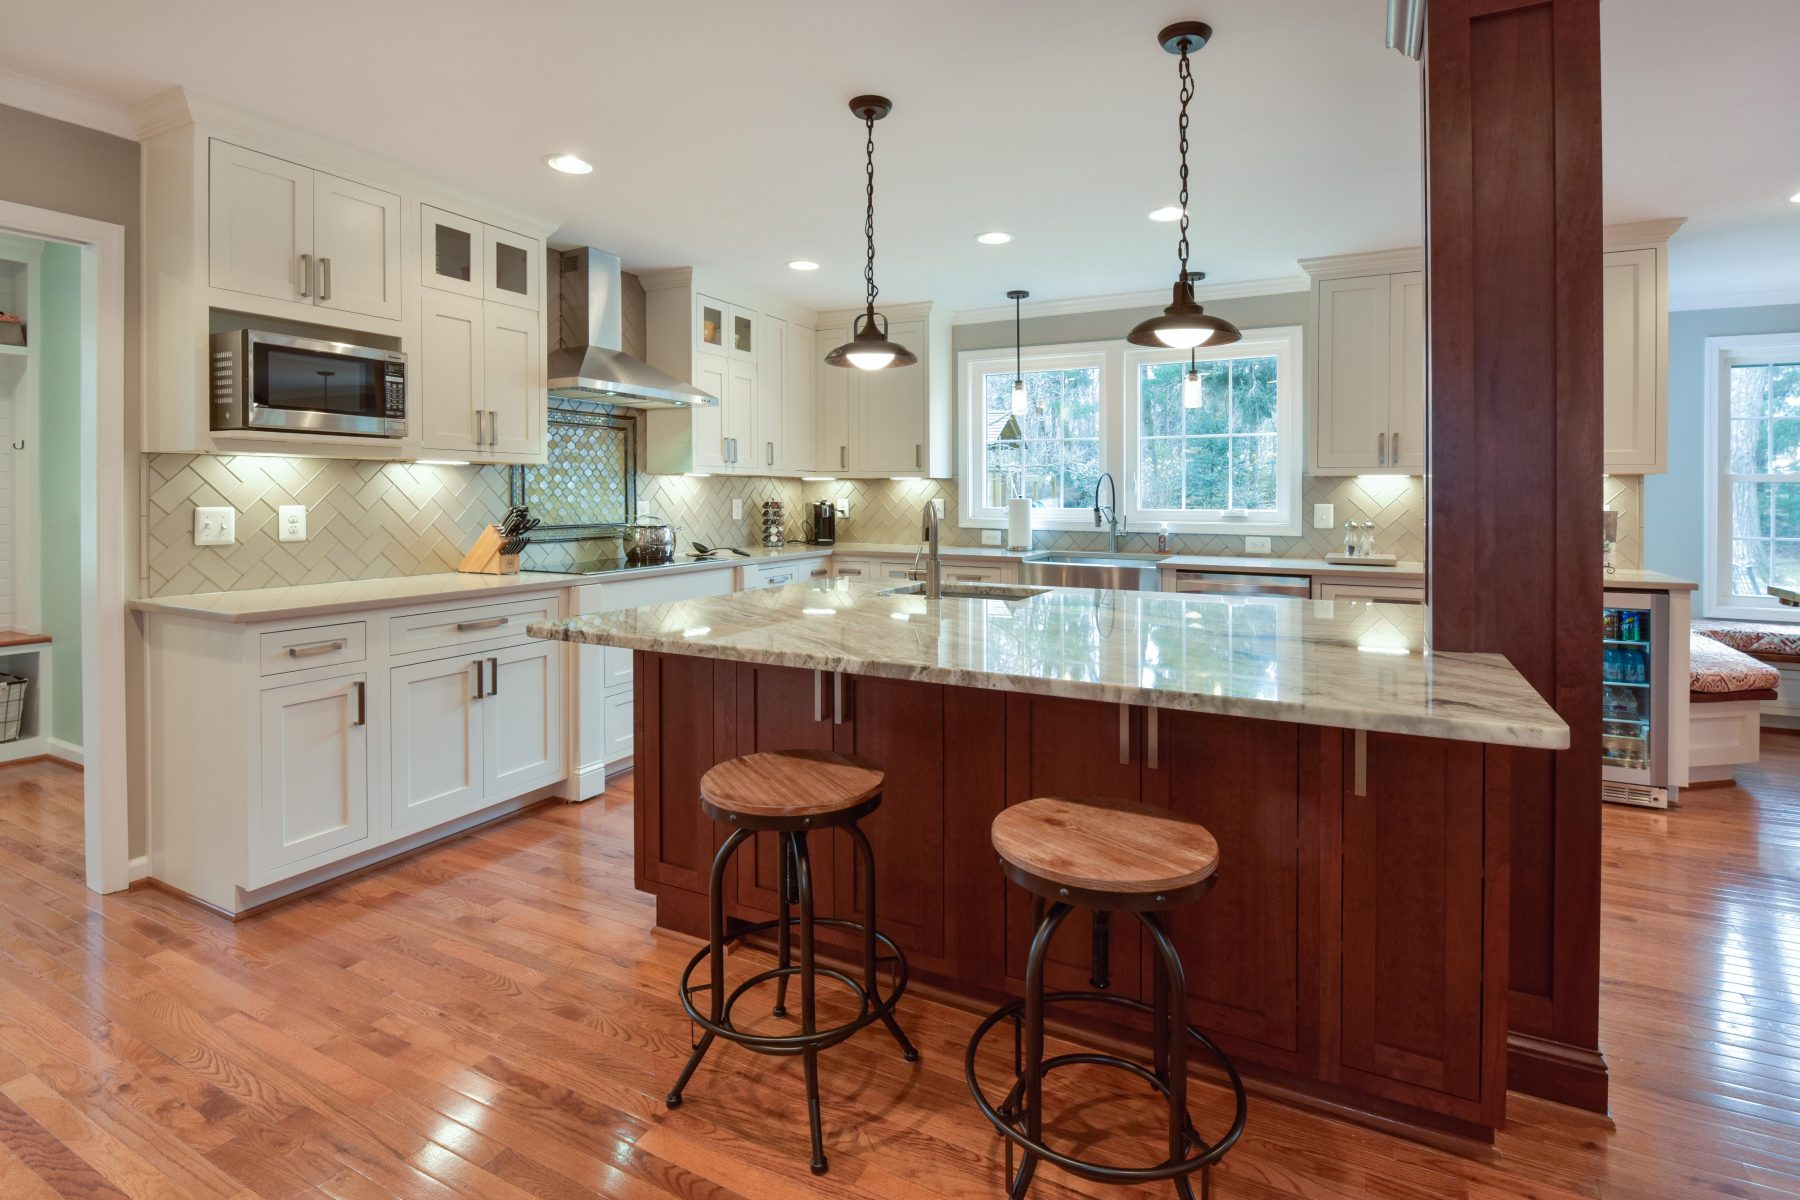 kitchens kitchen remodeling manassas va custom kitchen design vienna va